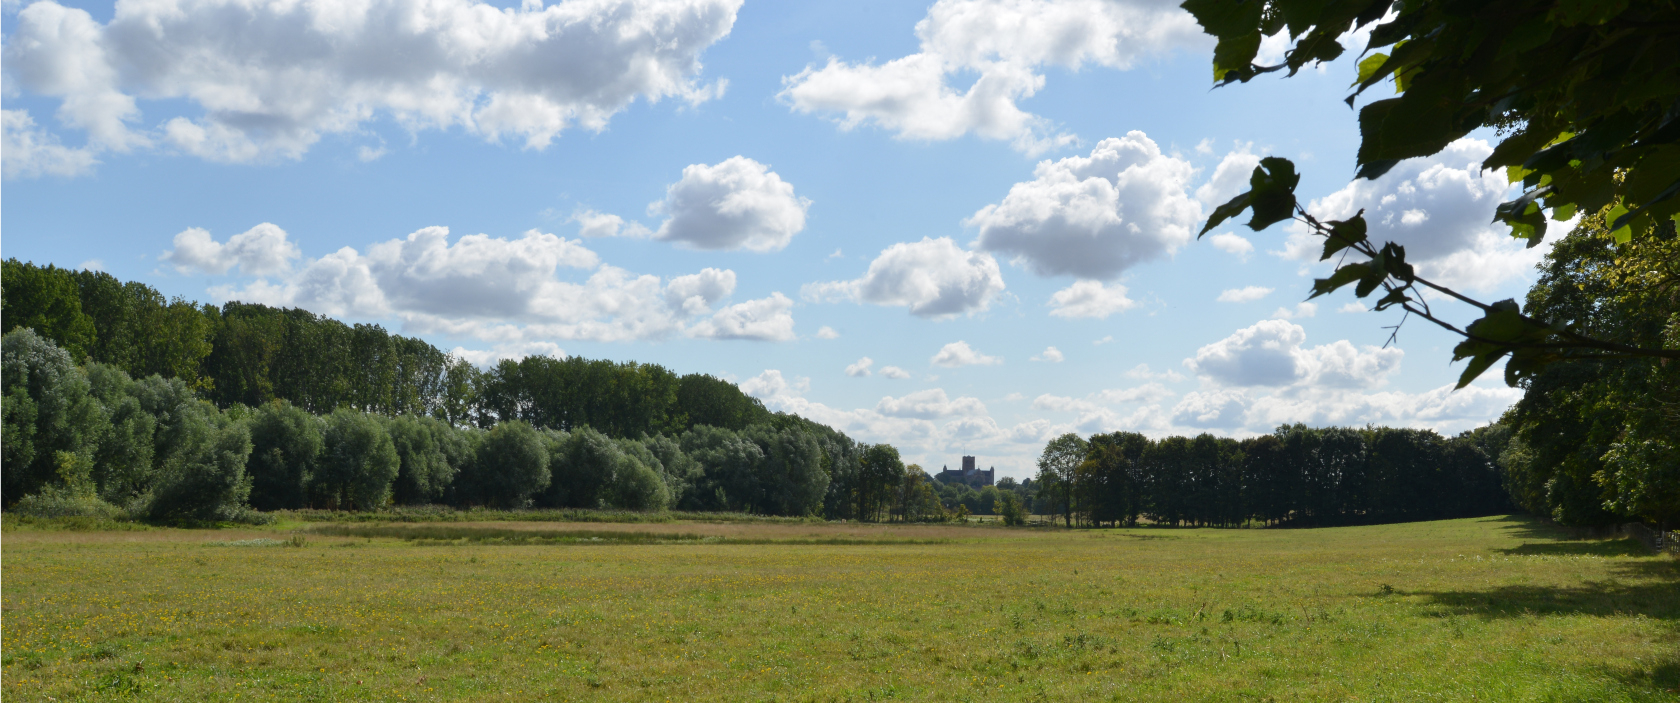 Prae Meadow, part of Gorhambury Estate, St Albans